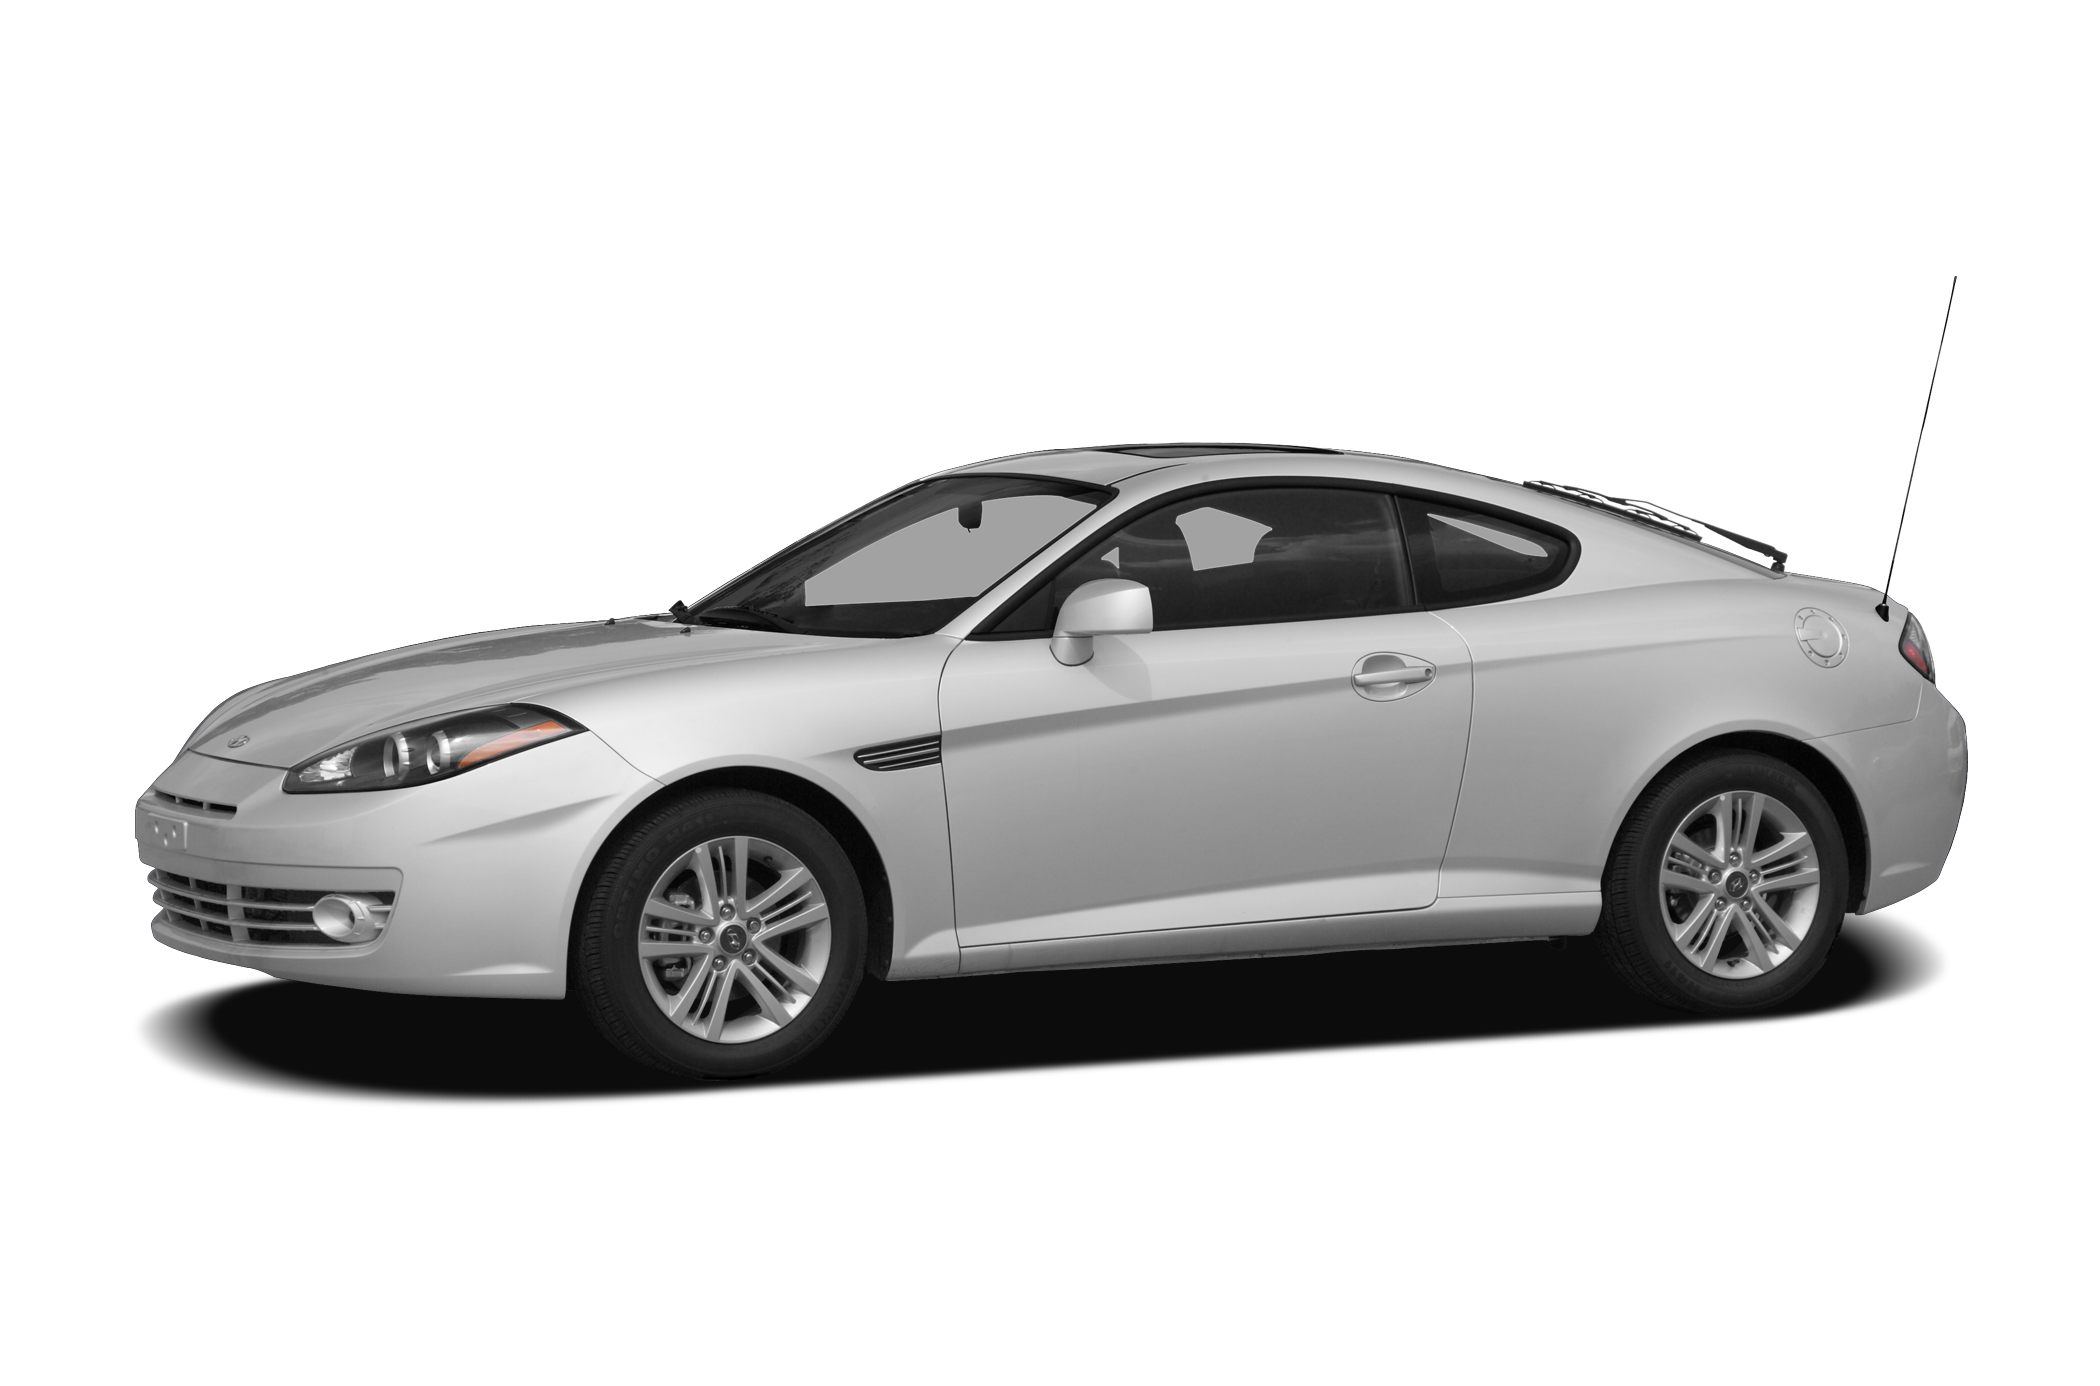 2007 hyundai tiburon gt limited 2dr coupe specs and prices 2007 hyundai tiburon gt limited 2dr coupe specs and prices